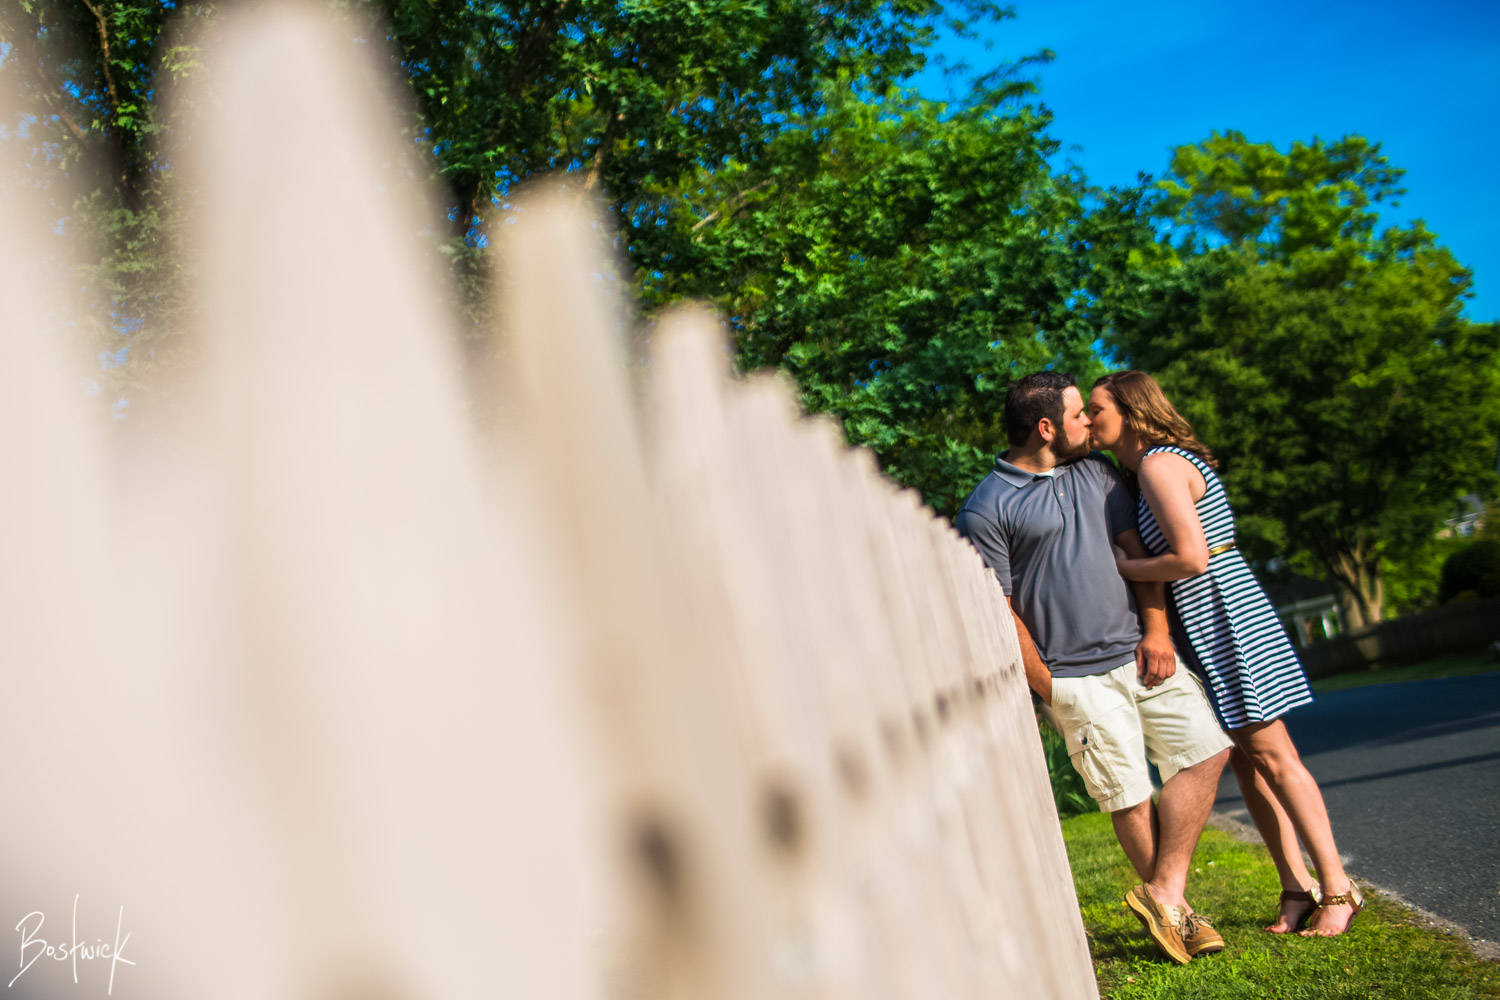 St-micheals-md-engagement-photos (4 of 19)